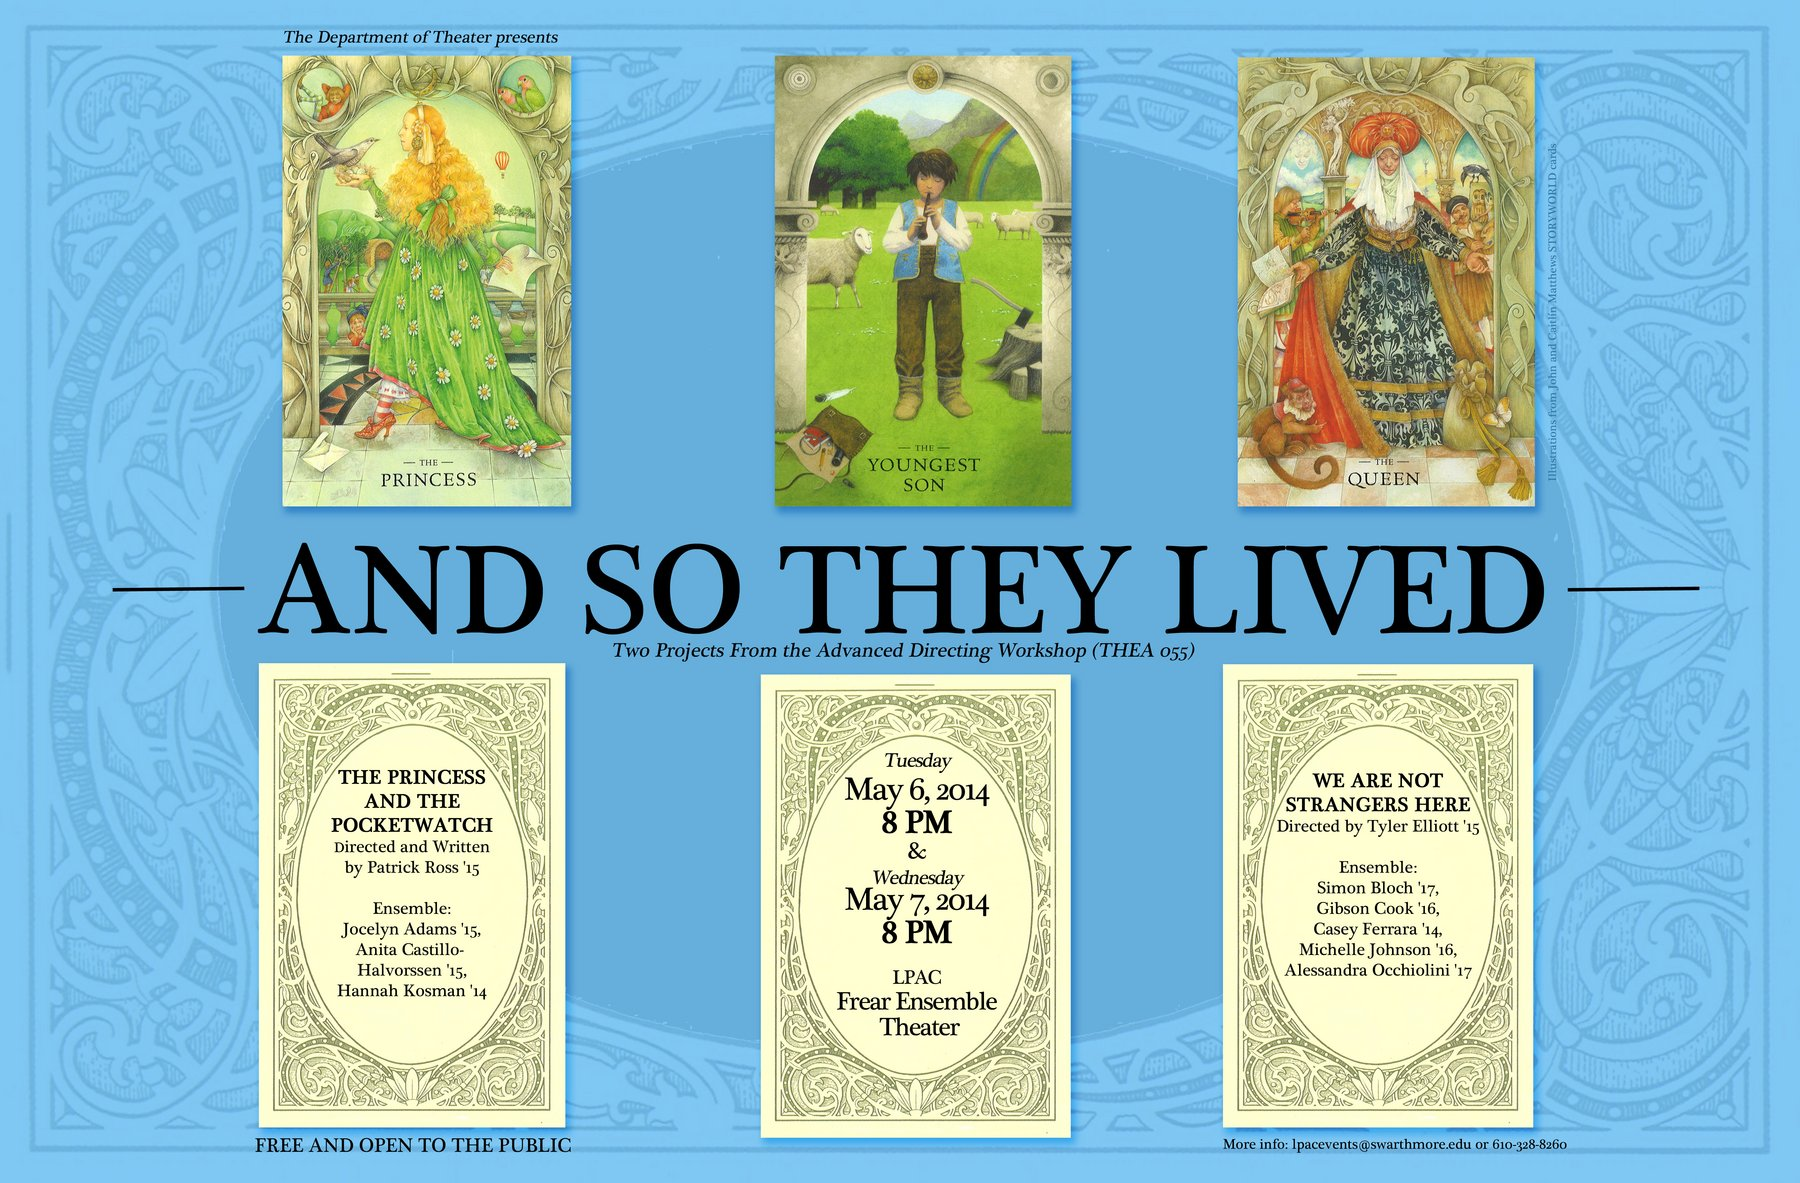 And So they lived poster